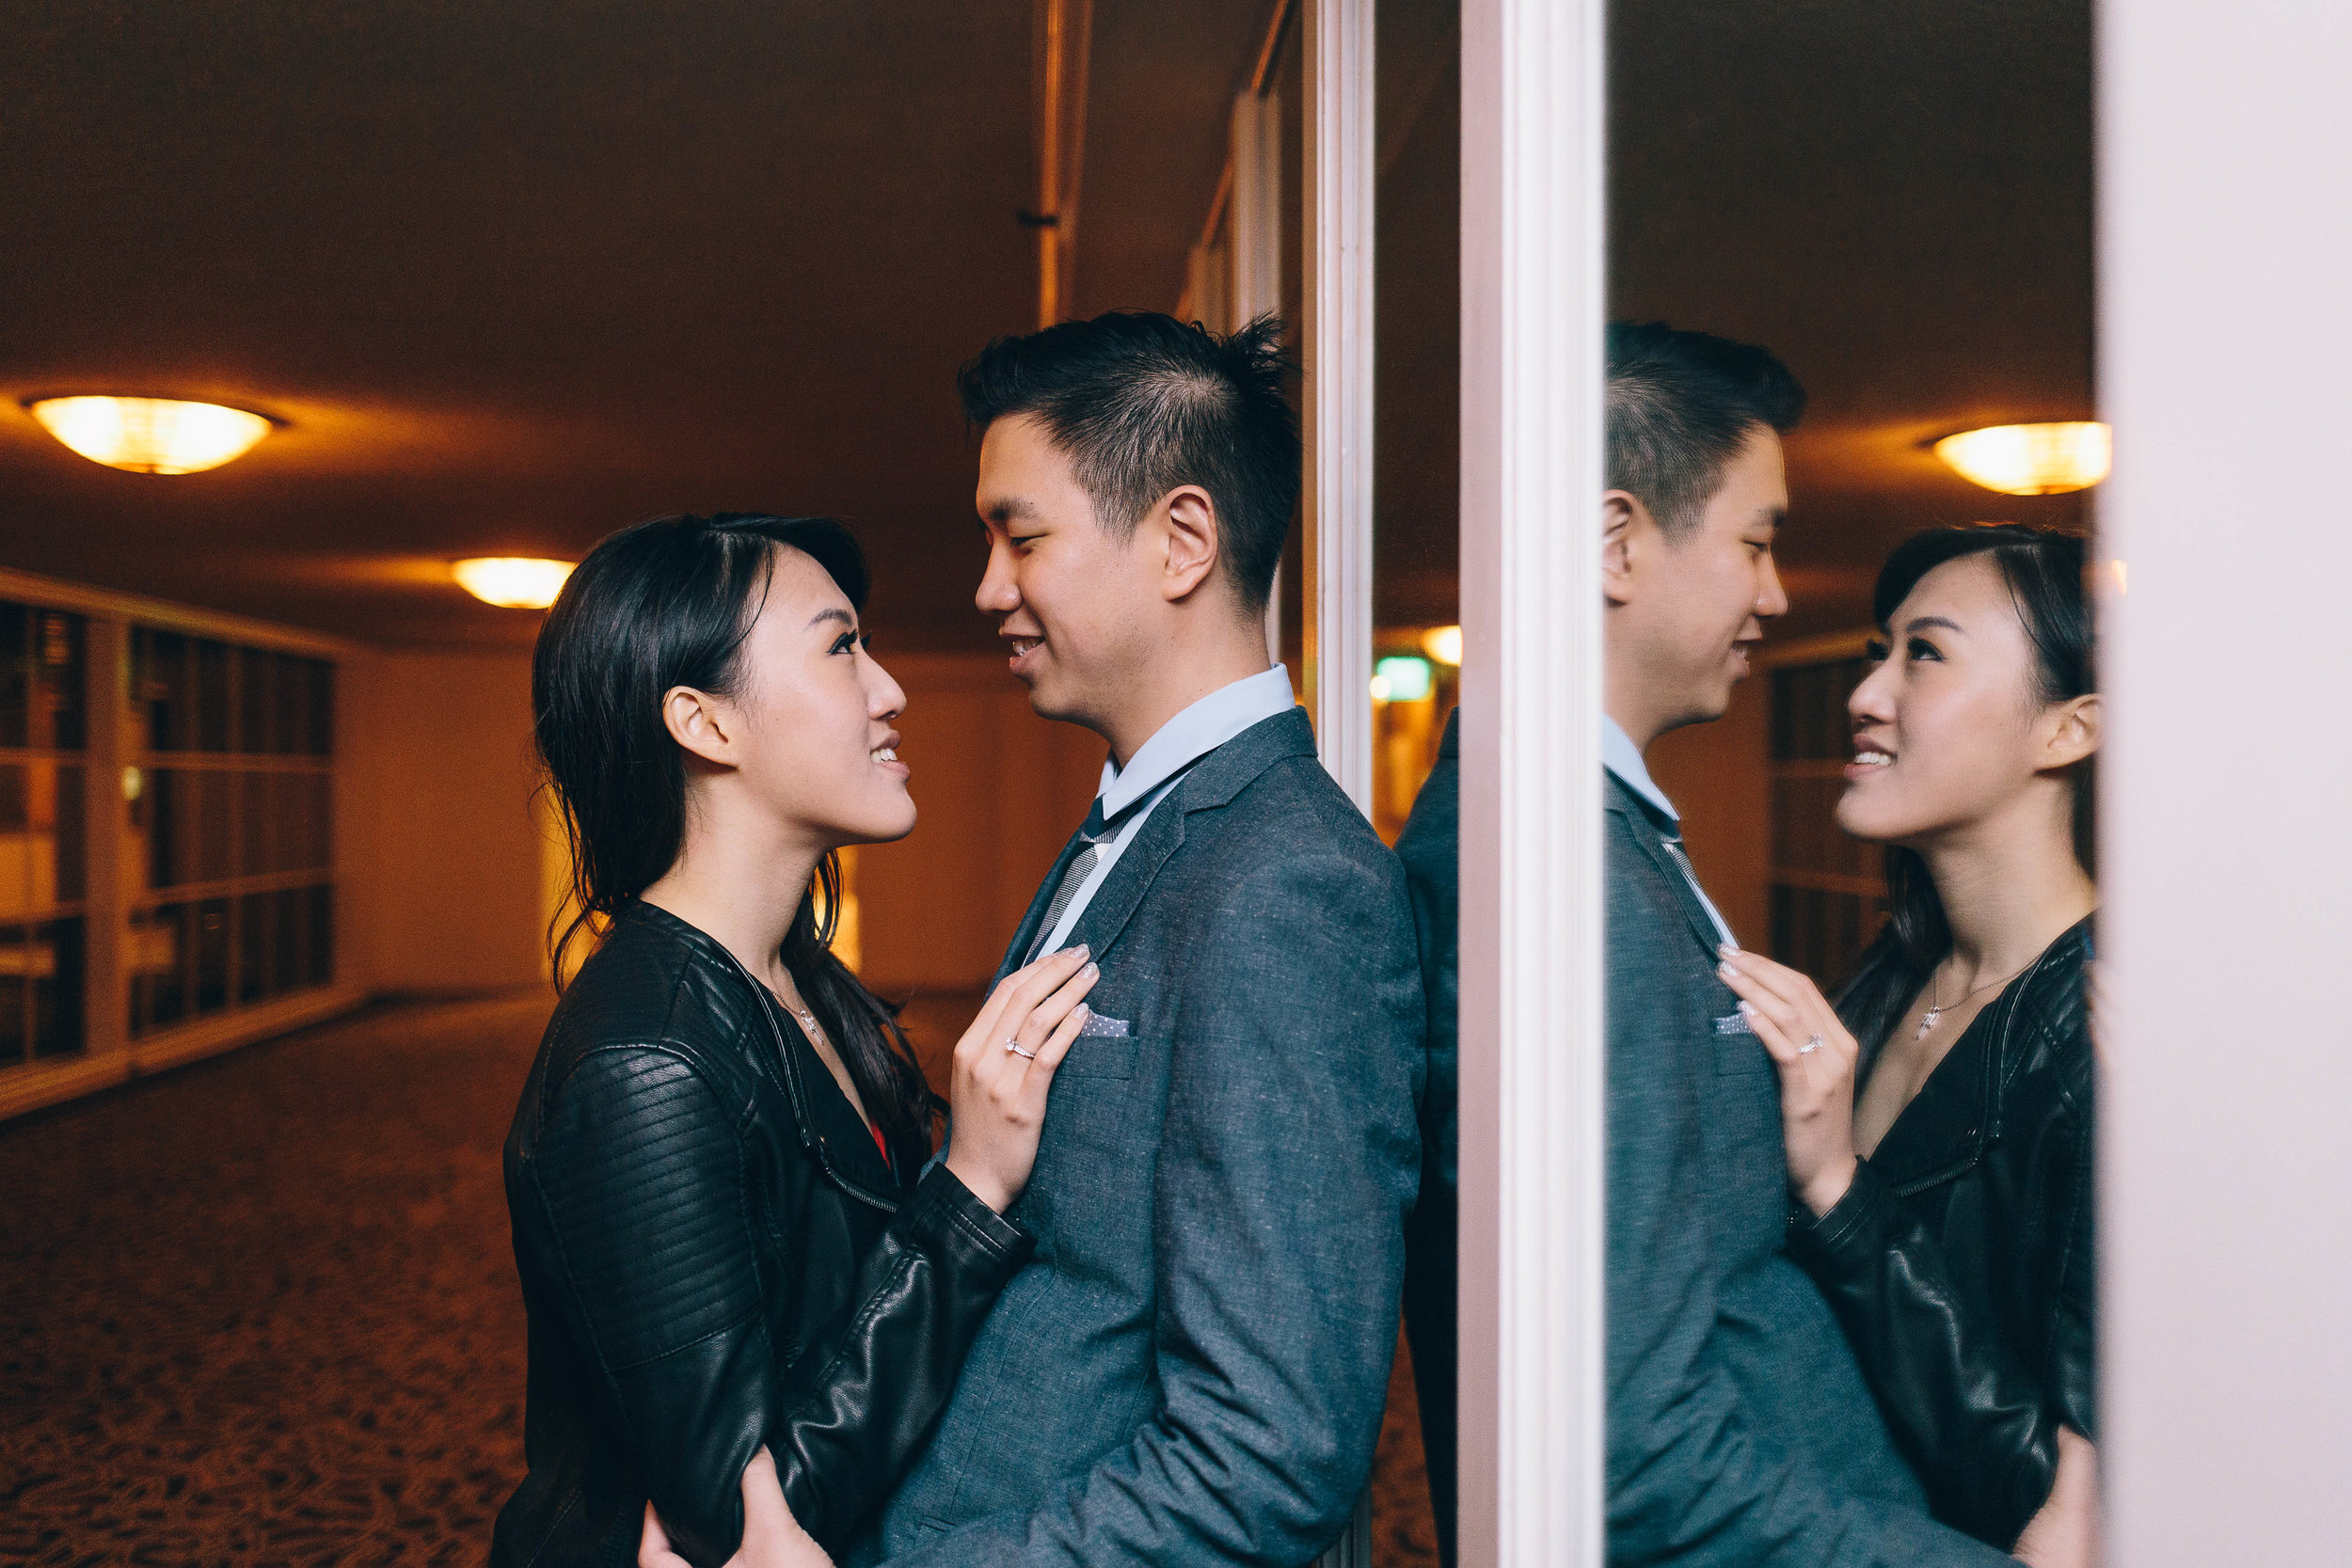 Pre-Wedding Photos in San Francisco by JBJ Pictures Pre-Wedding Photographer, Engagement Session and Wedding Photography in Napa, Sonoma, SF Bay Area (43).jpg